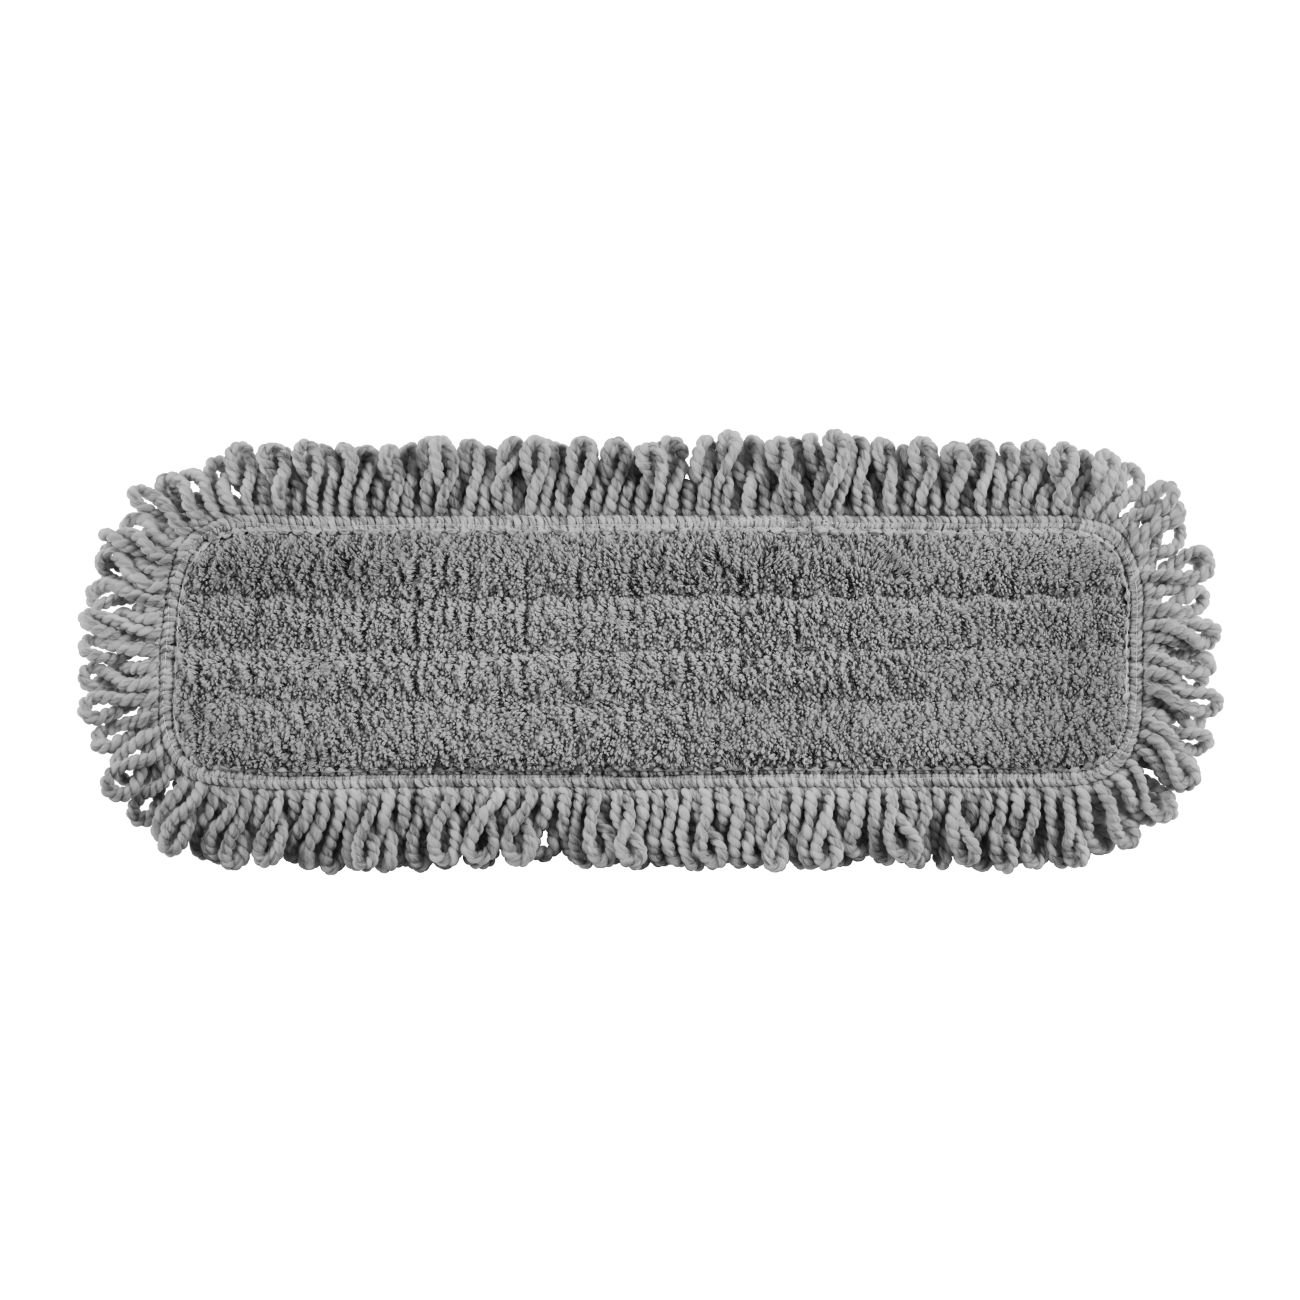 Rubbermaid Commercial Products 1867397 Executive Series Pulse Multi-Purpose Microfiber Dusting Flat Mop, 18'', Single-Sided (Pack of 6)